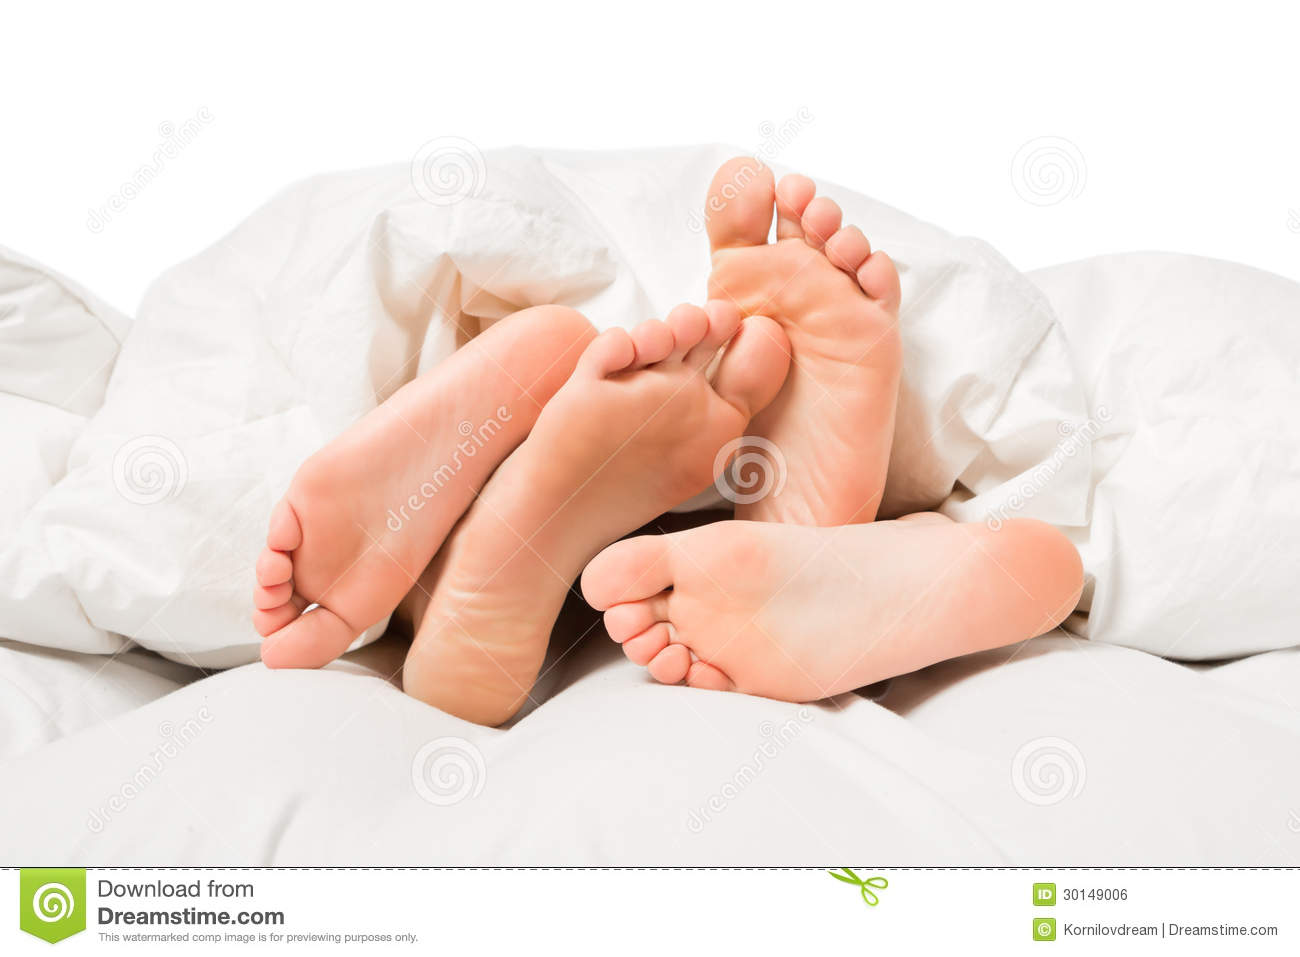 Feet In A Bed Royalty Free Stock Image - Image 30149006-4008